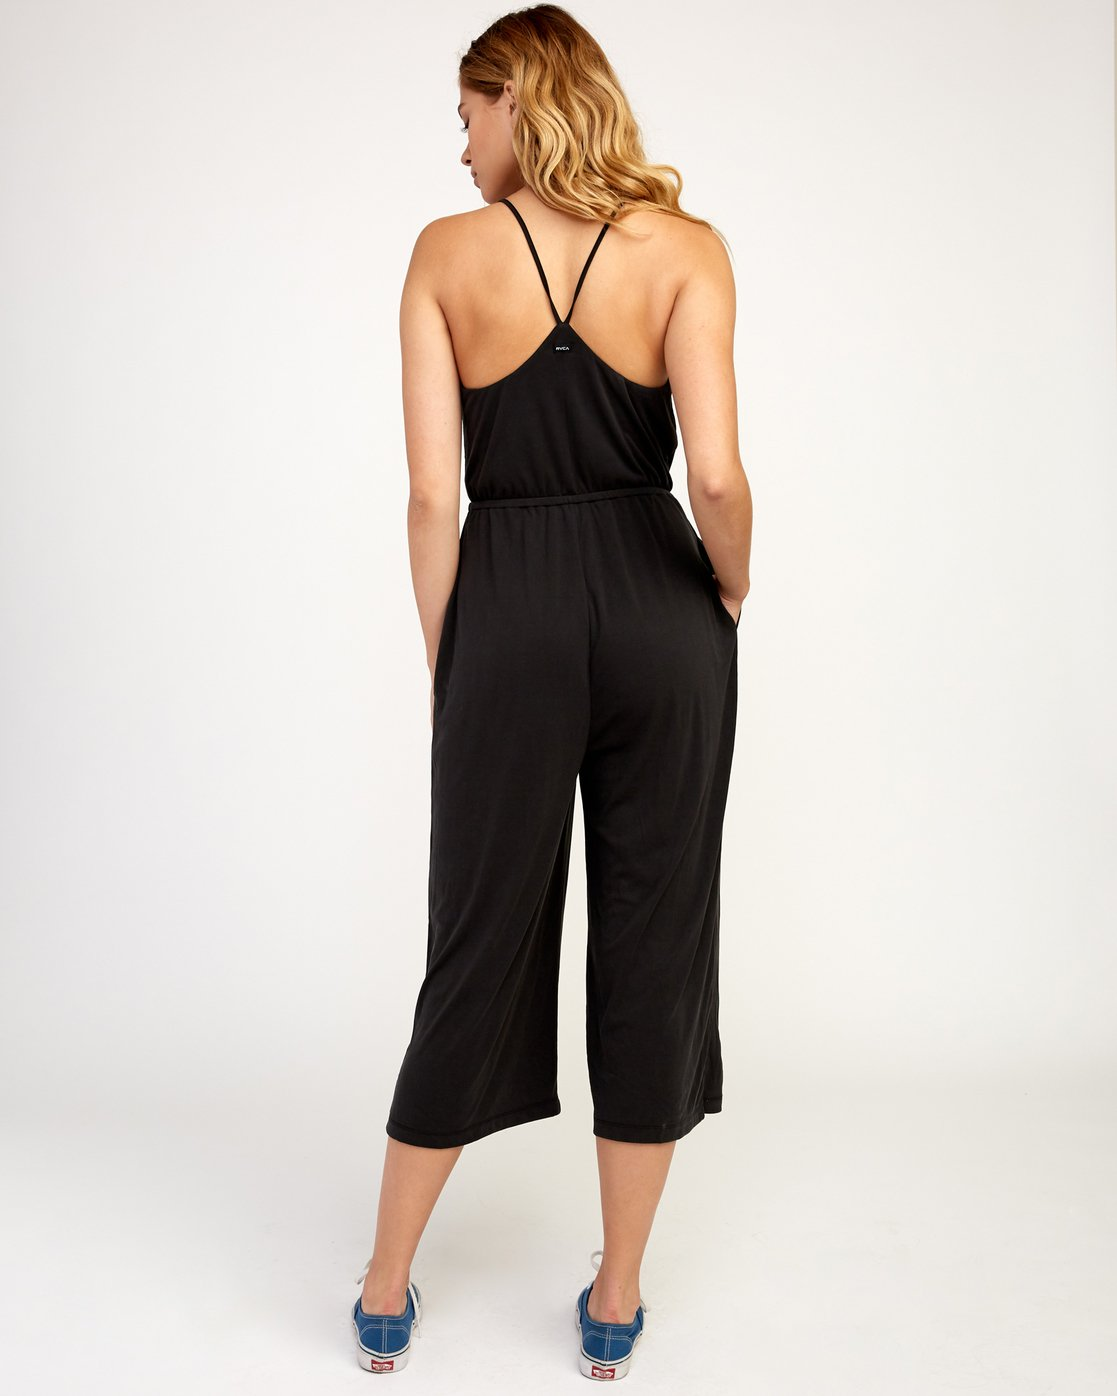 4 Jarvis Jumper - Jumpsuit for Women Black N3ONRDRVP9 RVCA